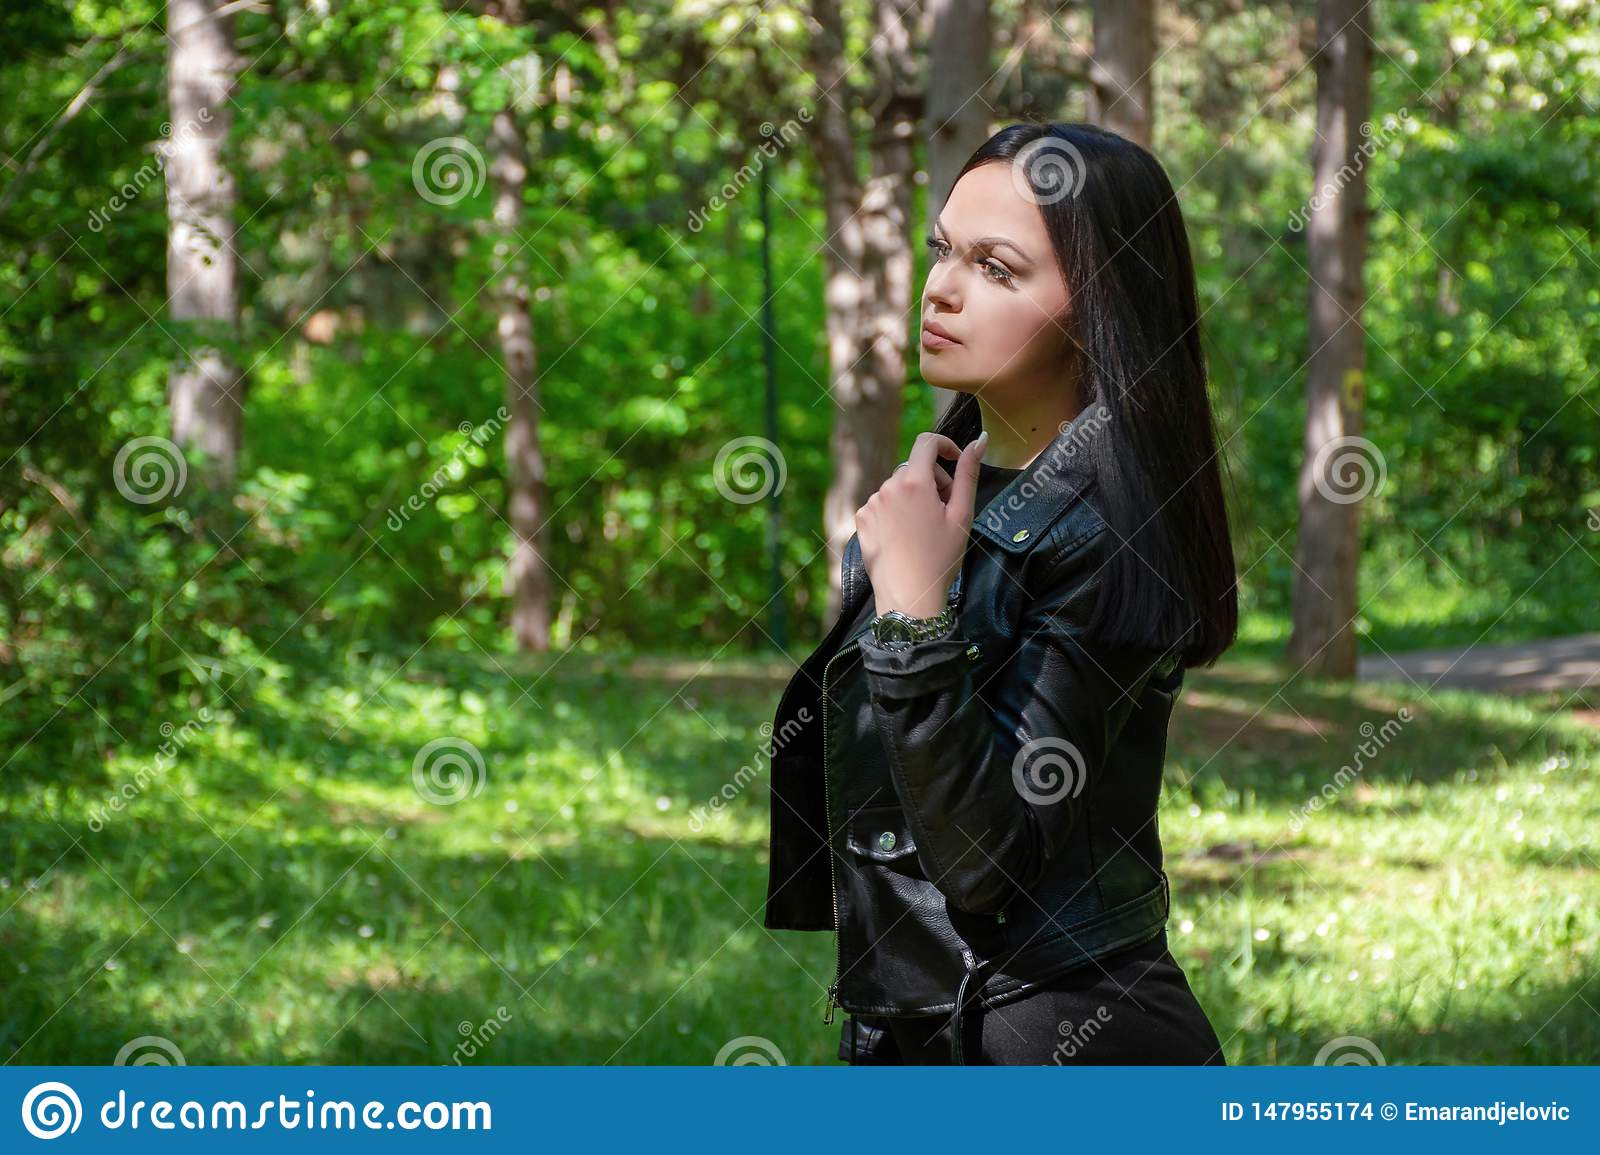 Beautiful girl portrait in the forest on a spring day. Woman with black hairstyle and wears a leather jacket